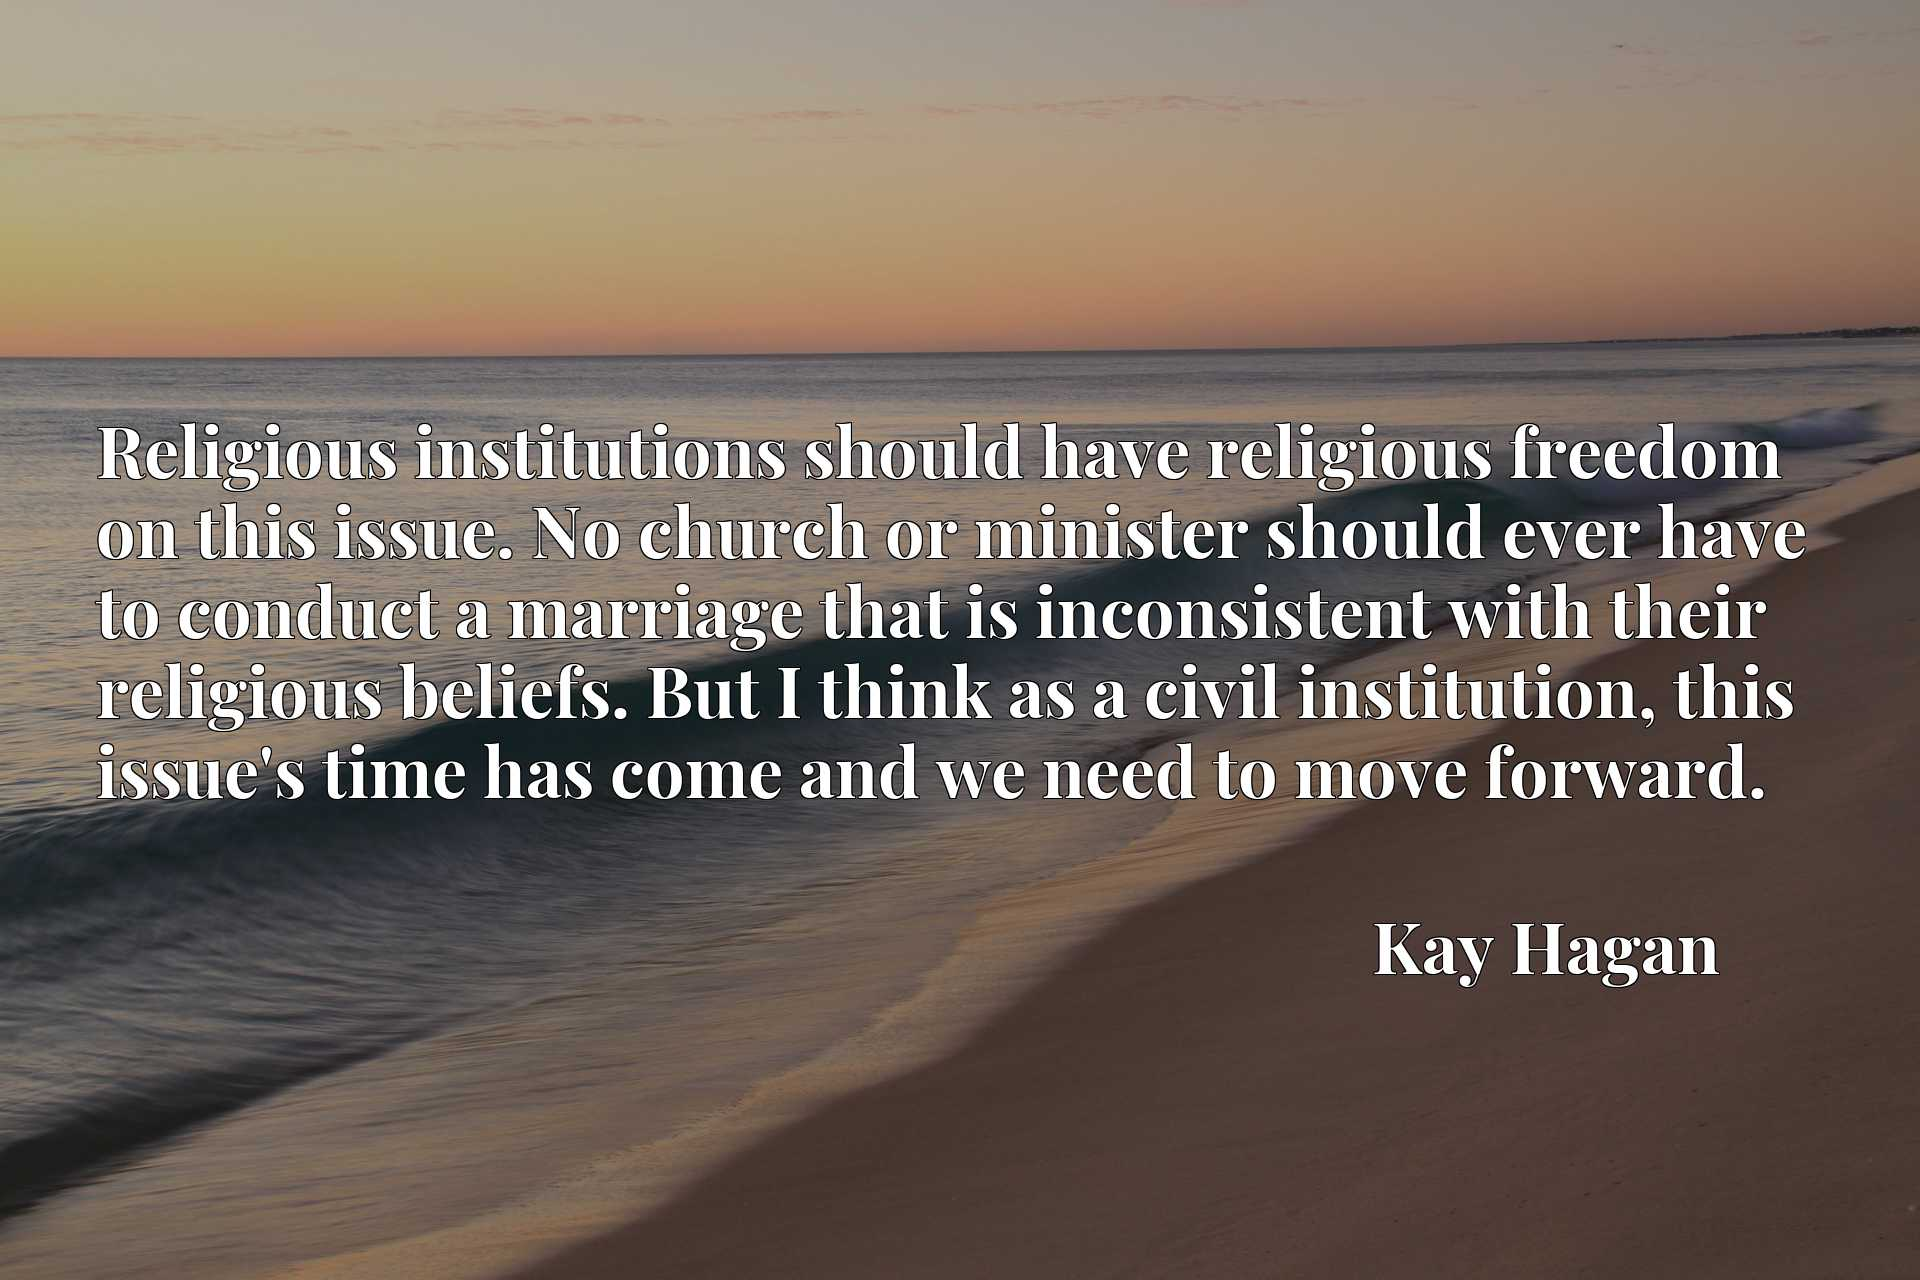 Religious institutions should have religious freedom on this issue. No church or minister should ever have to conduct a marriage that is inconsistent with their religious beliefs. But I think as a civil institution, this issue's time has come and we need to move forward.